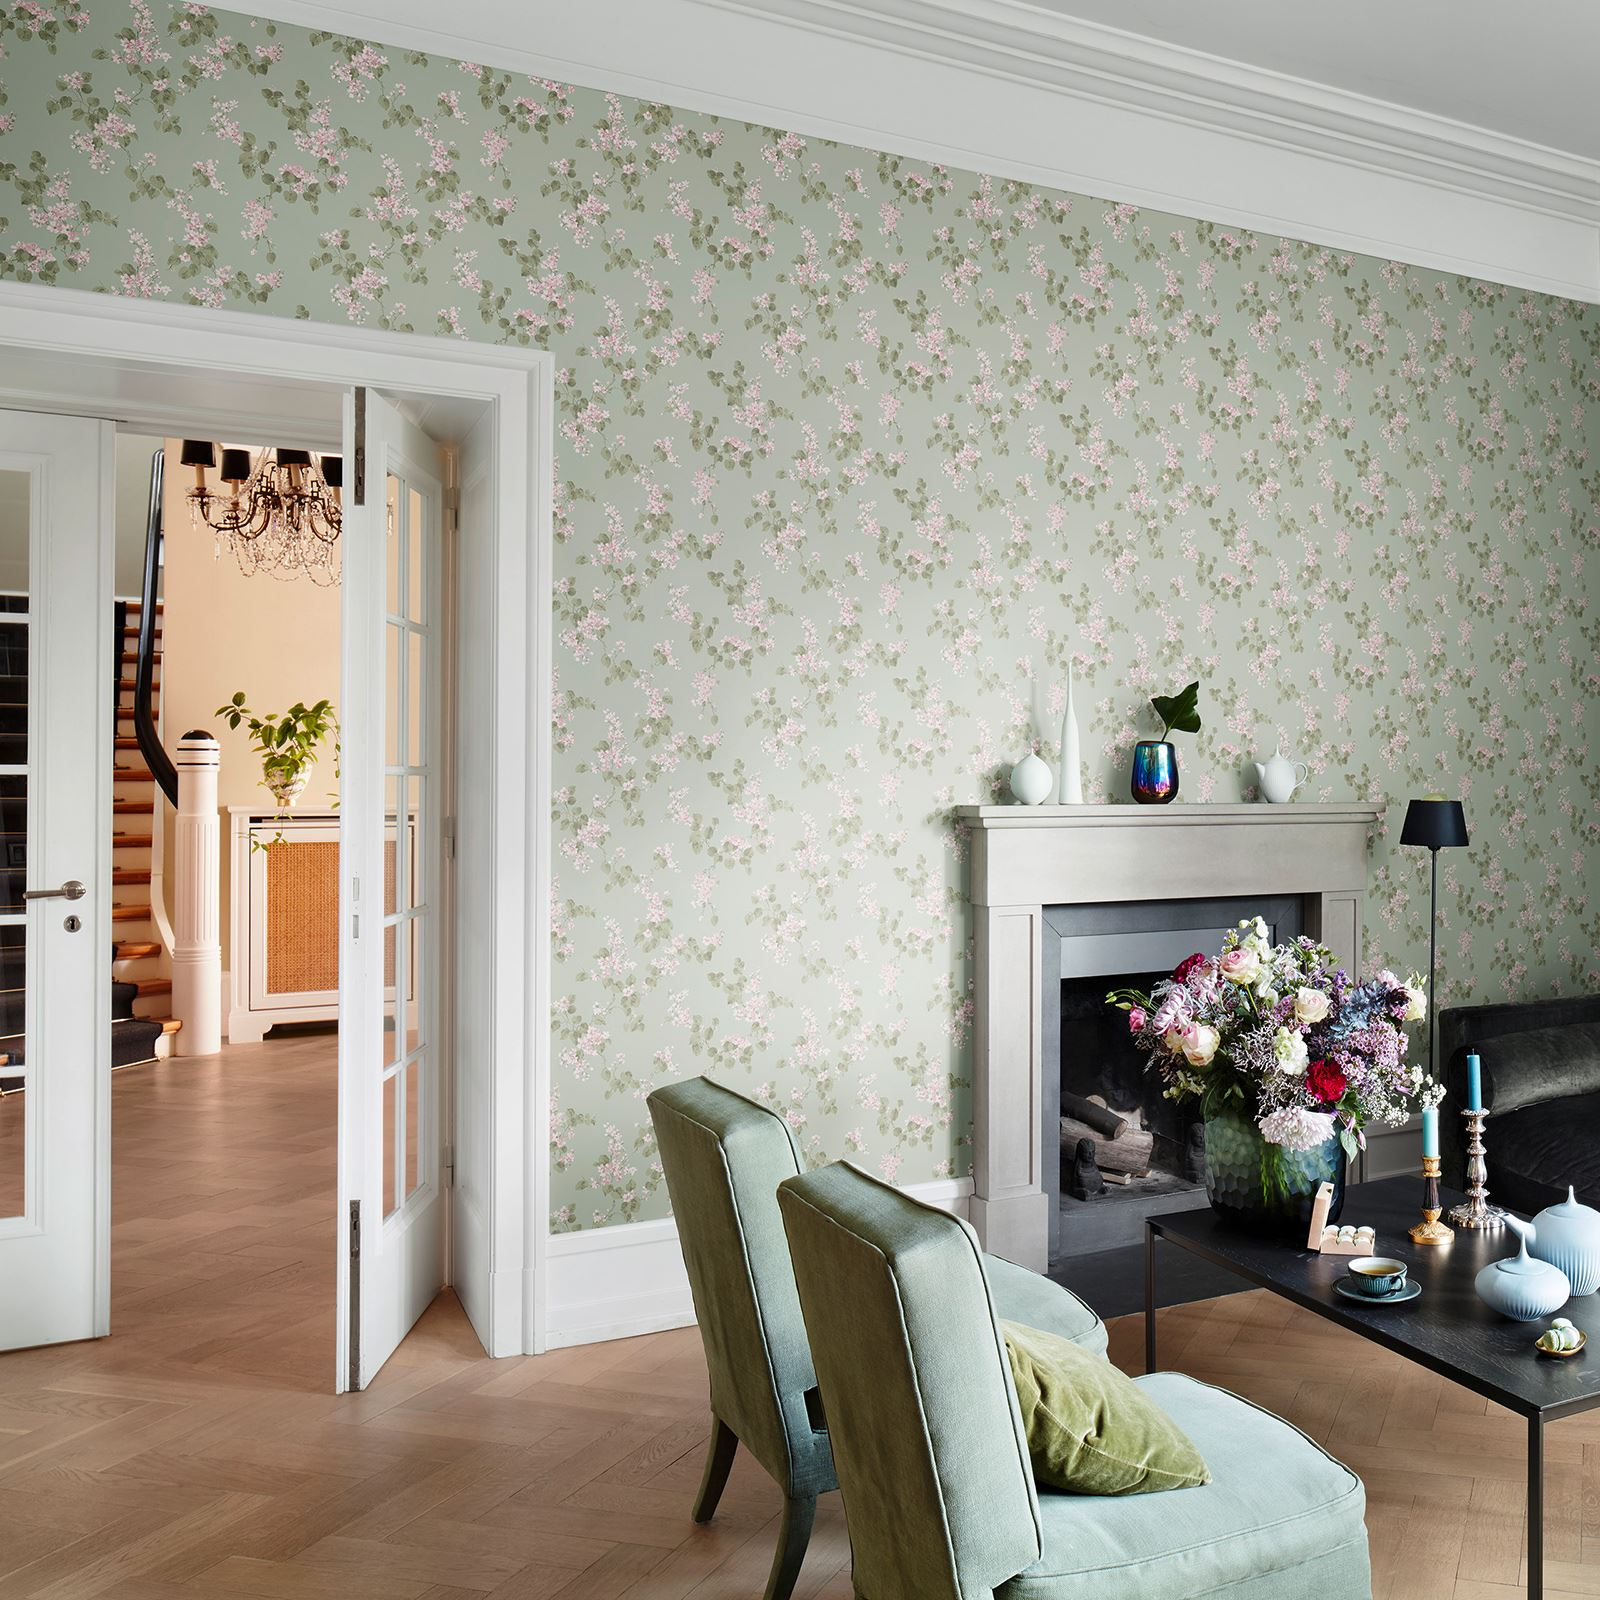 Details About Rasch Emilia Floral Blossom Rose Wallpaper Shabby Chic Feature Wall Decor New